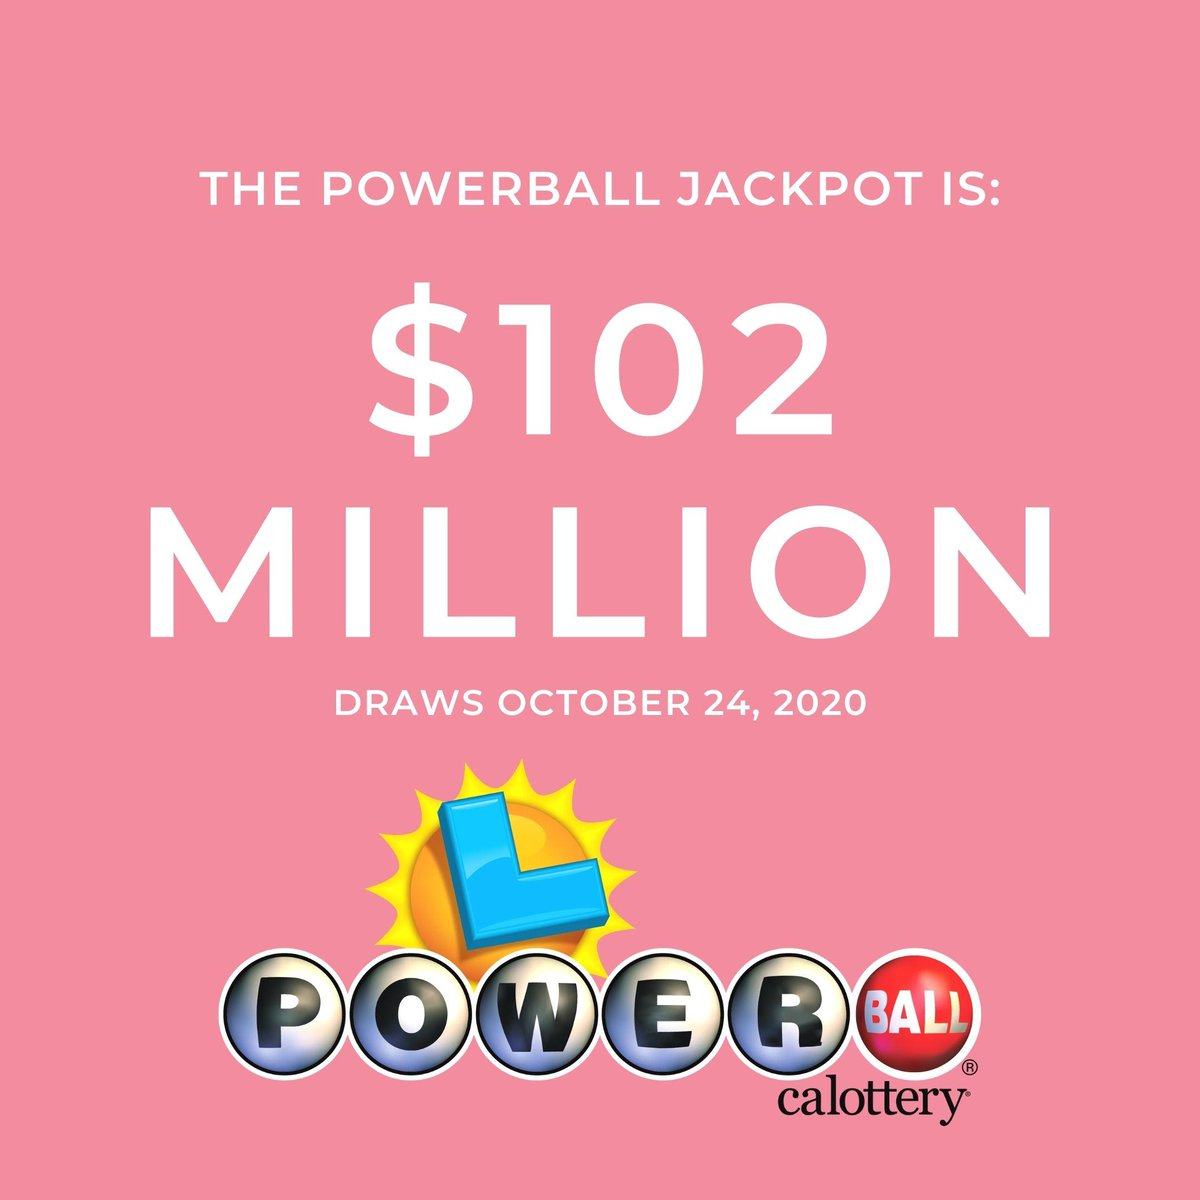 WOW! The #Powerball jackpot is now $1 0 2 M I L L I O N ! Visit your local retailer to play. #CALottery #JackpotAlert https://t.co/B8H2aFy6i6